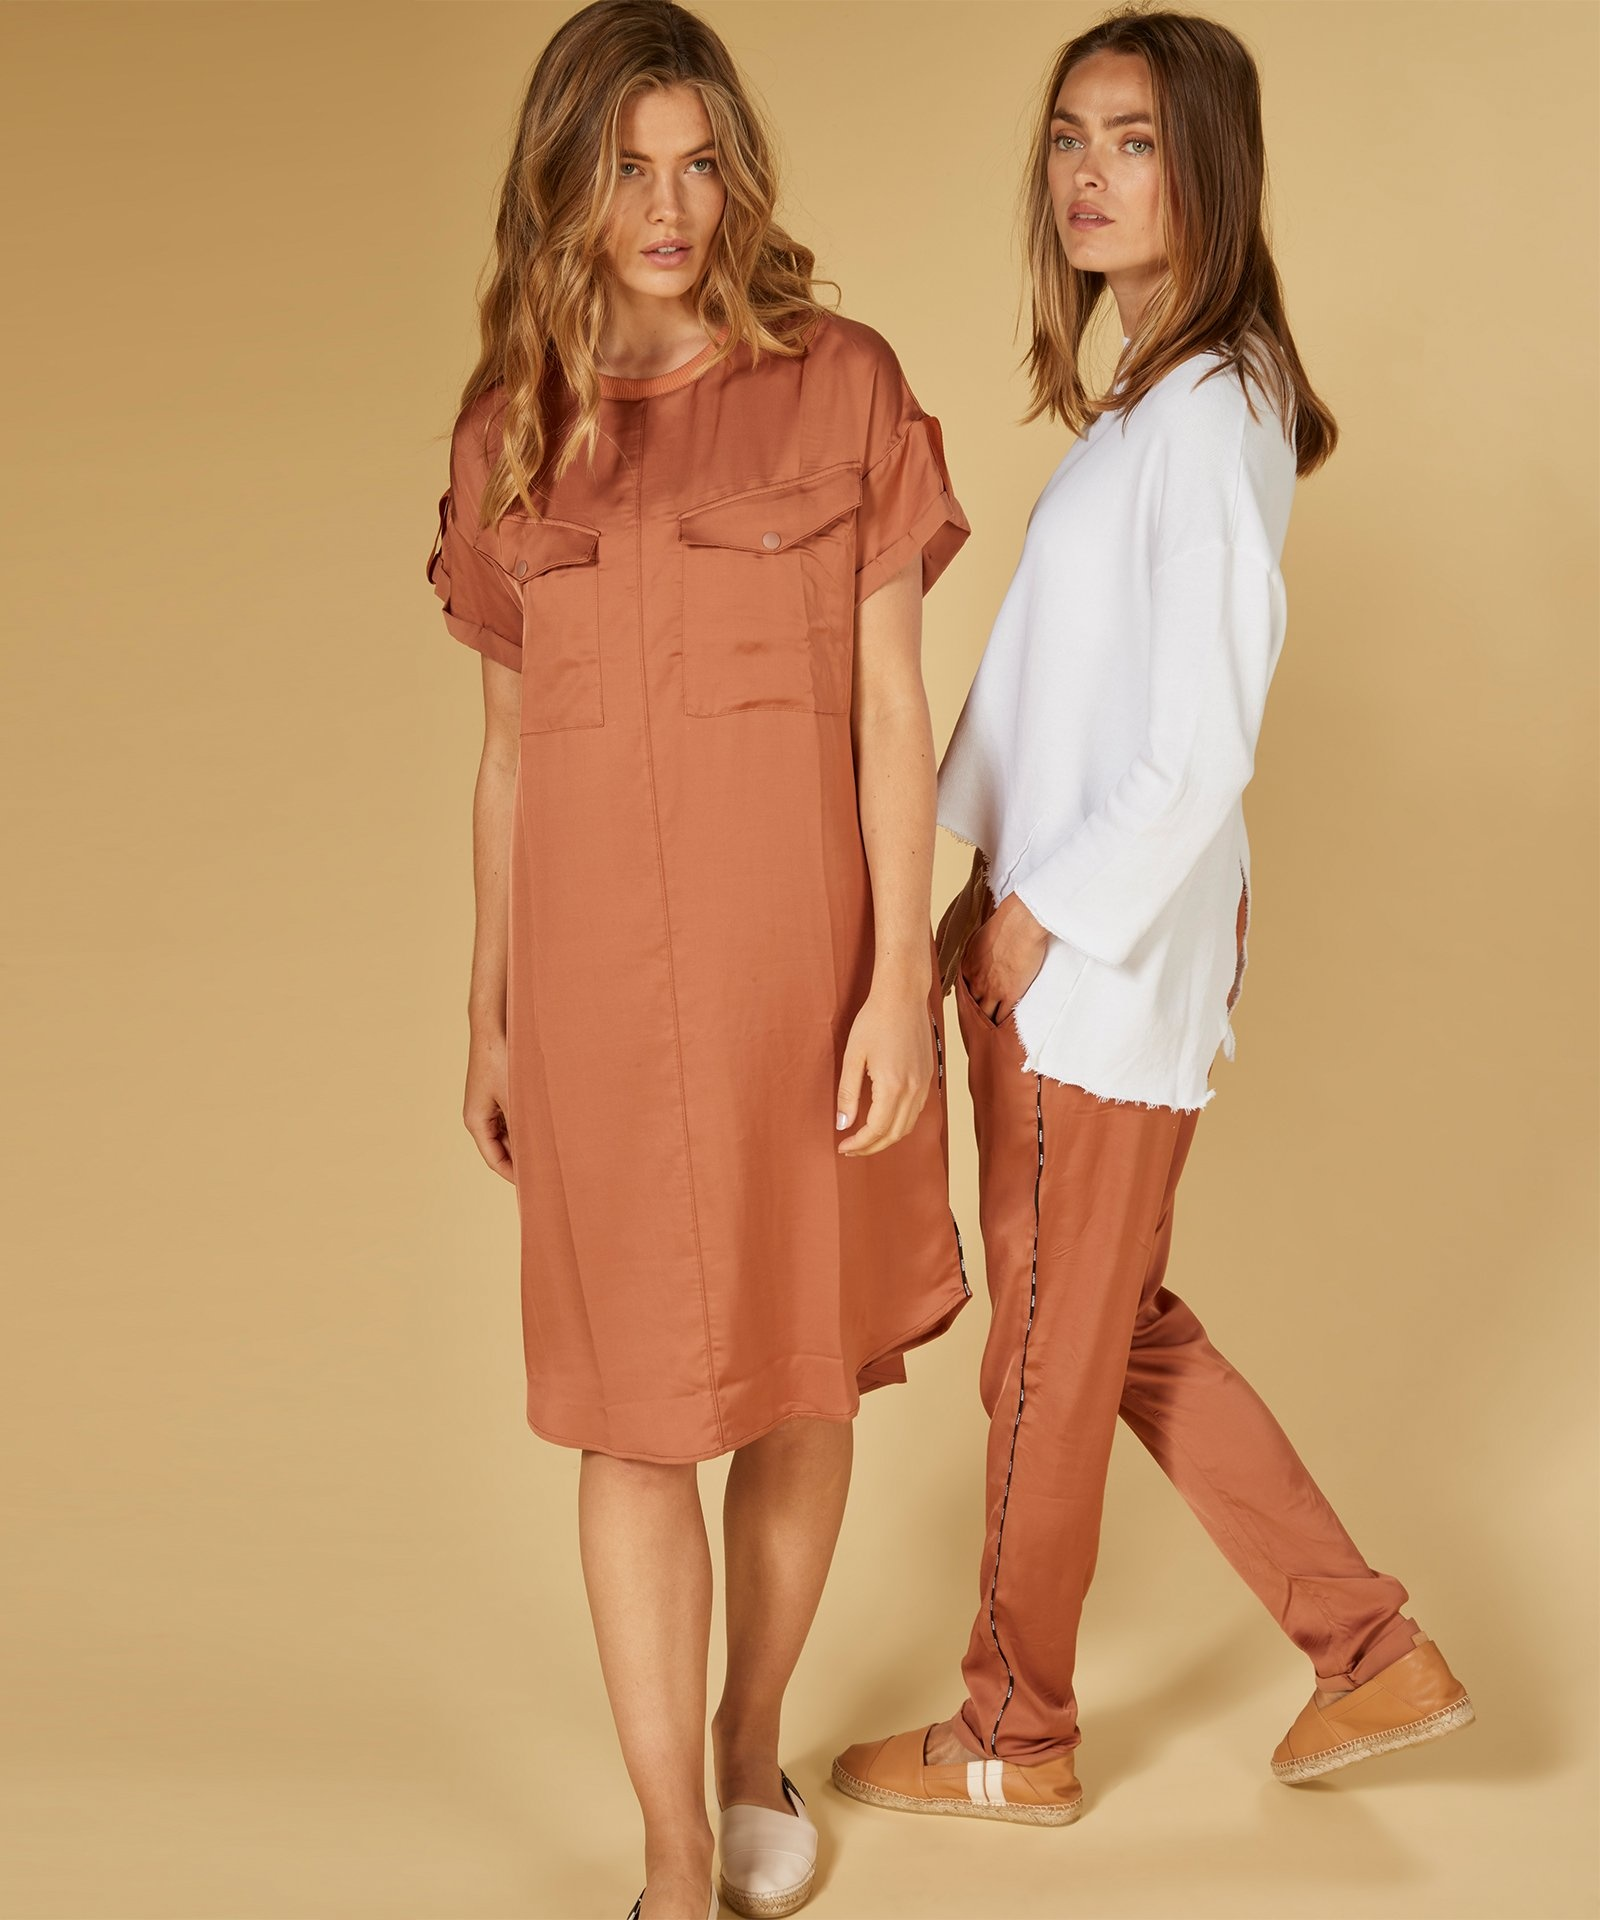 Jurk dress copper brown-6